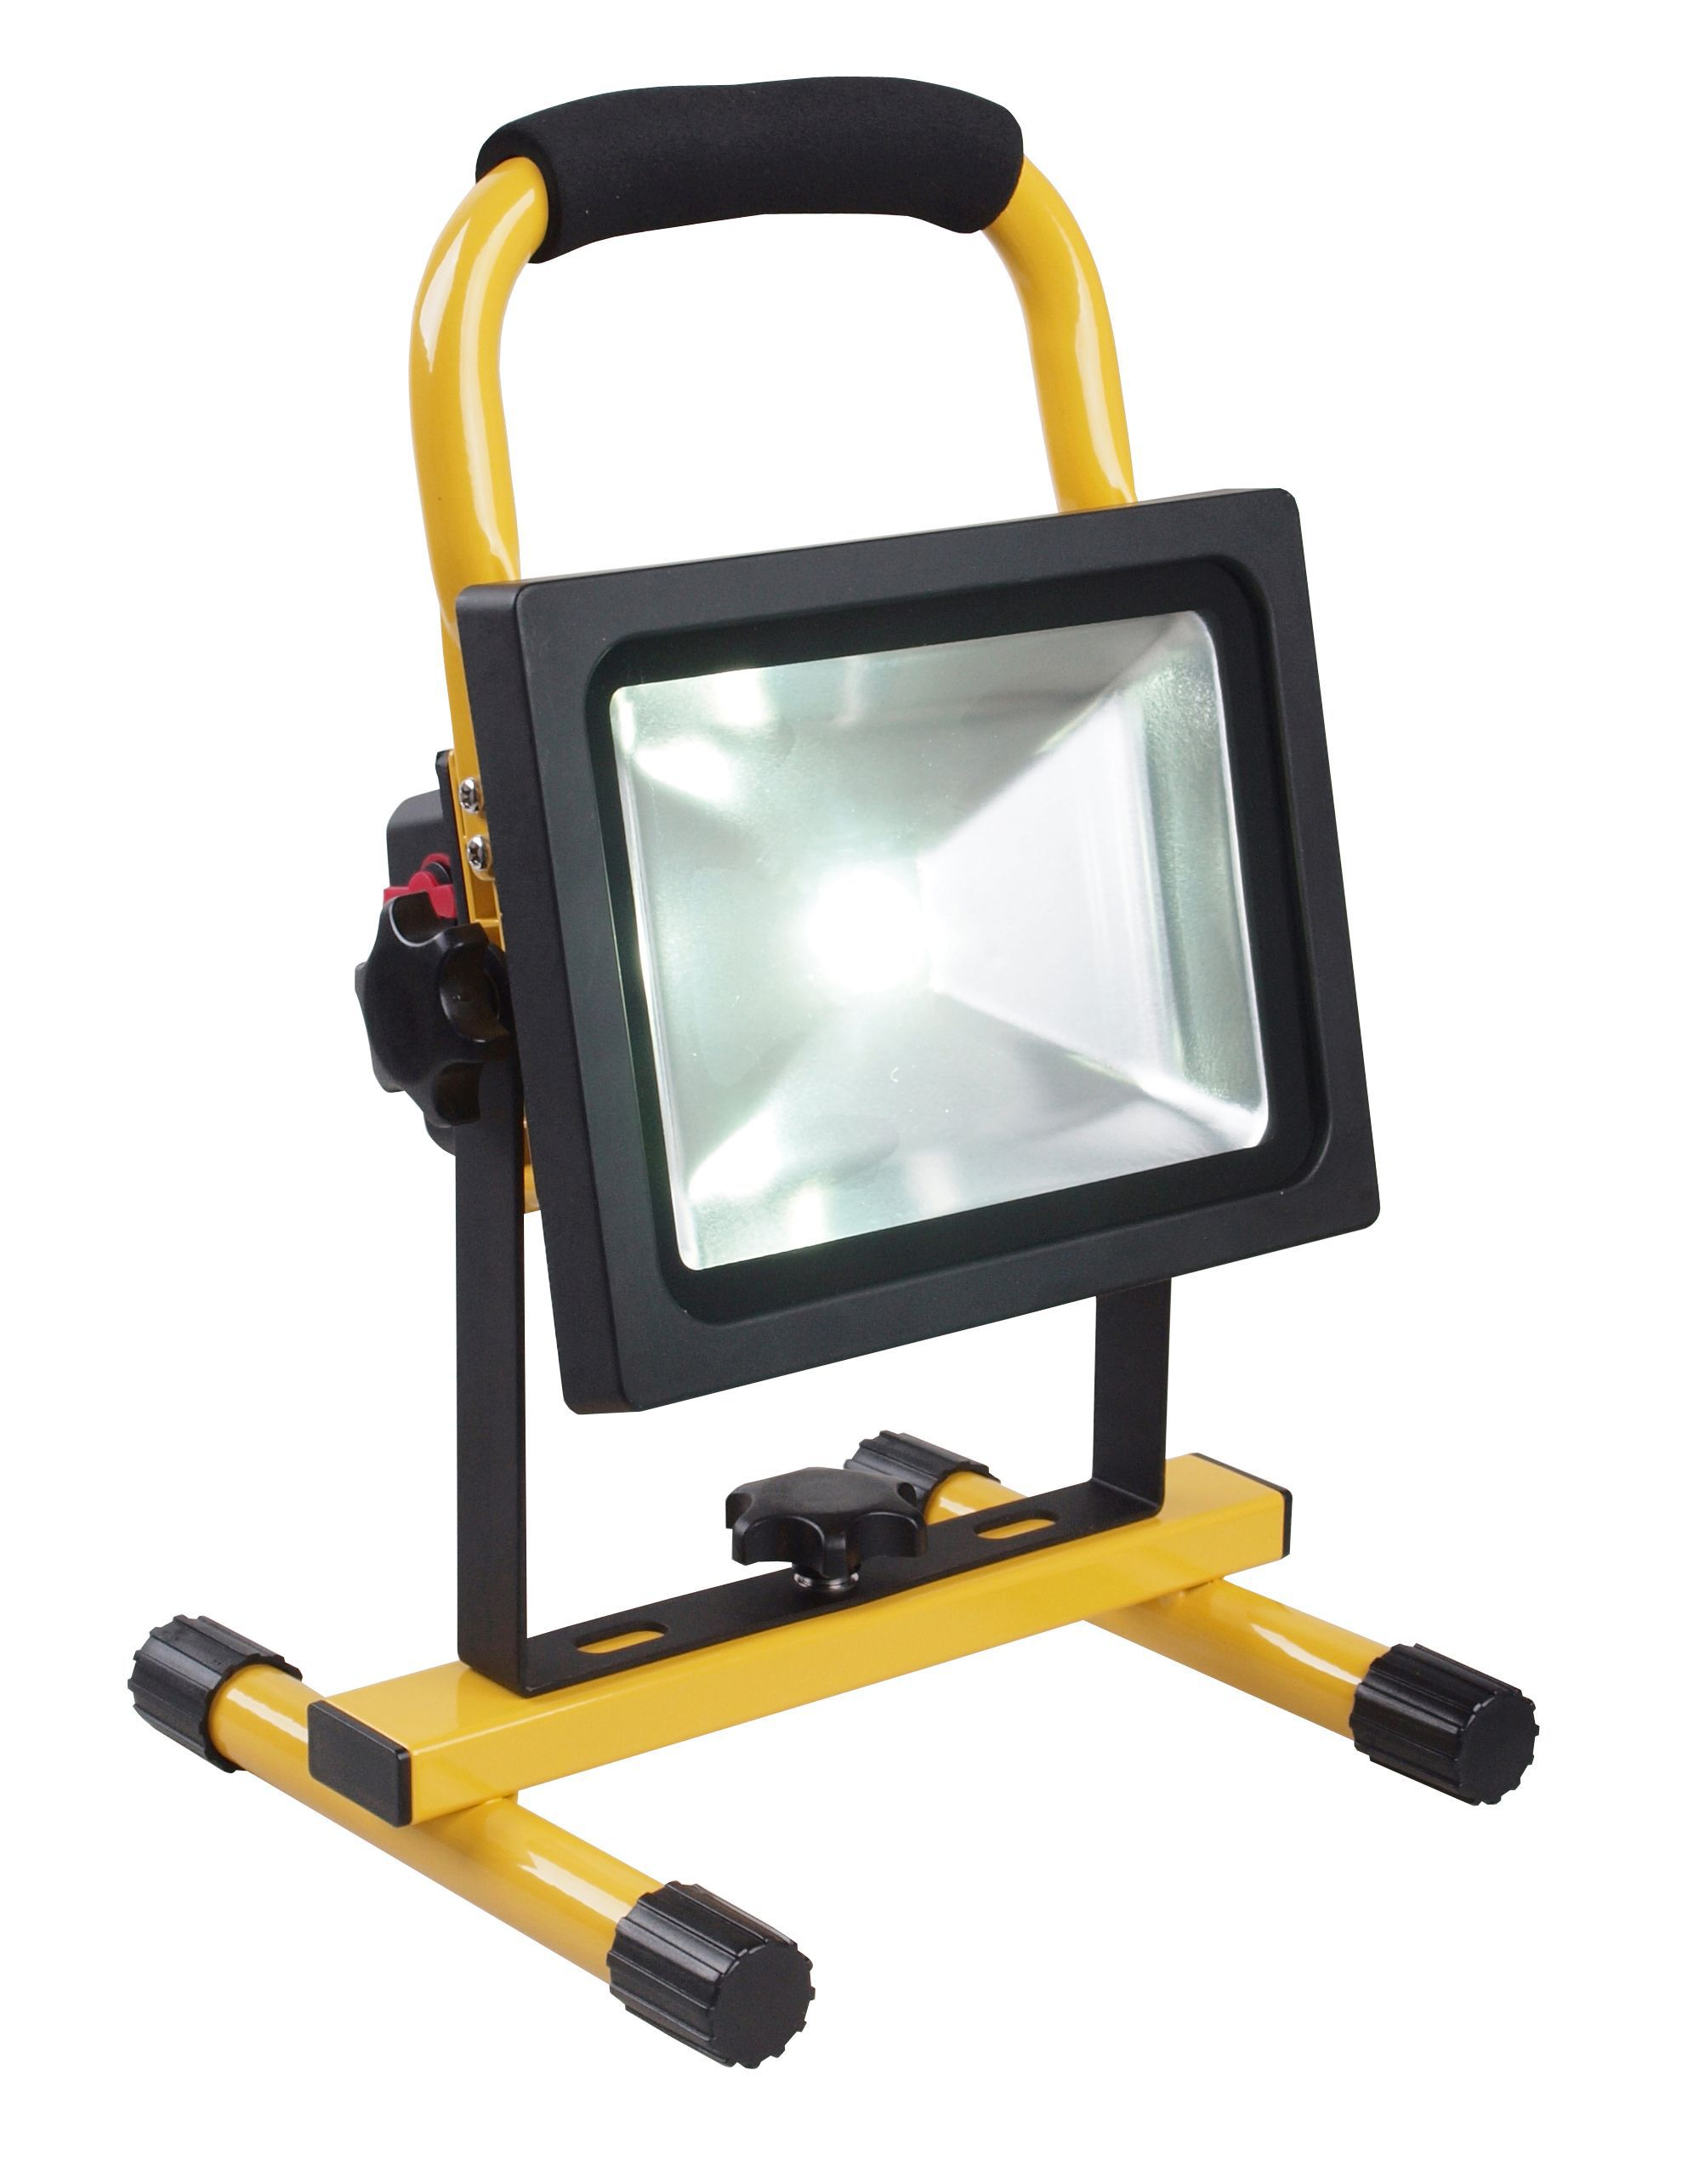 free model dewalt rechargeable shipping tools shop lumens work volt product led worklight cordless light